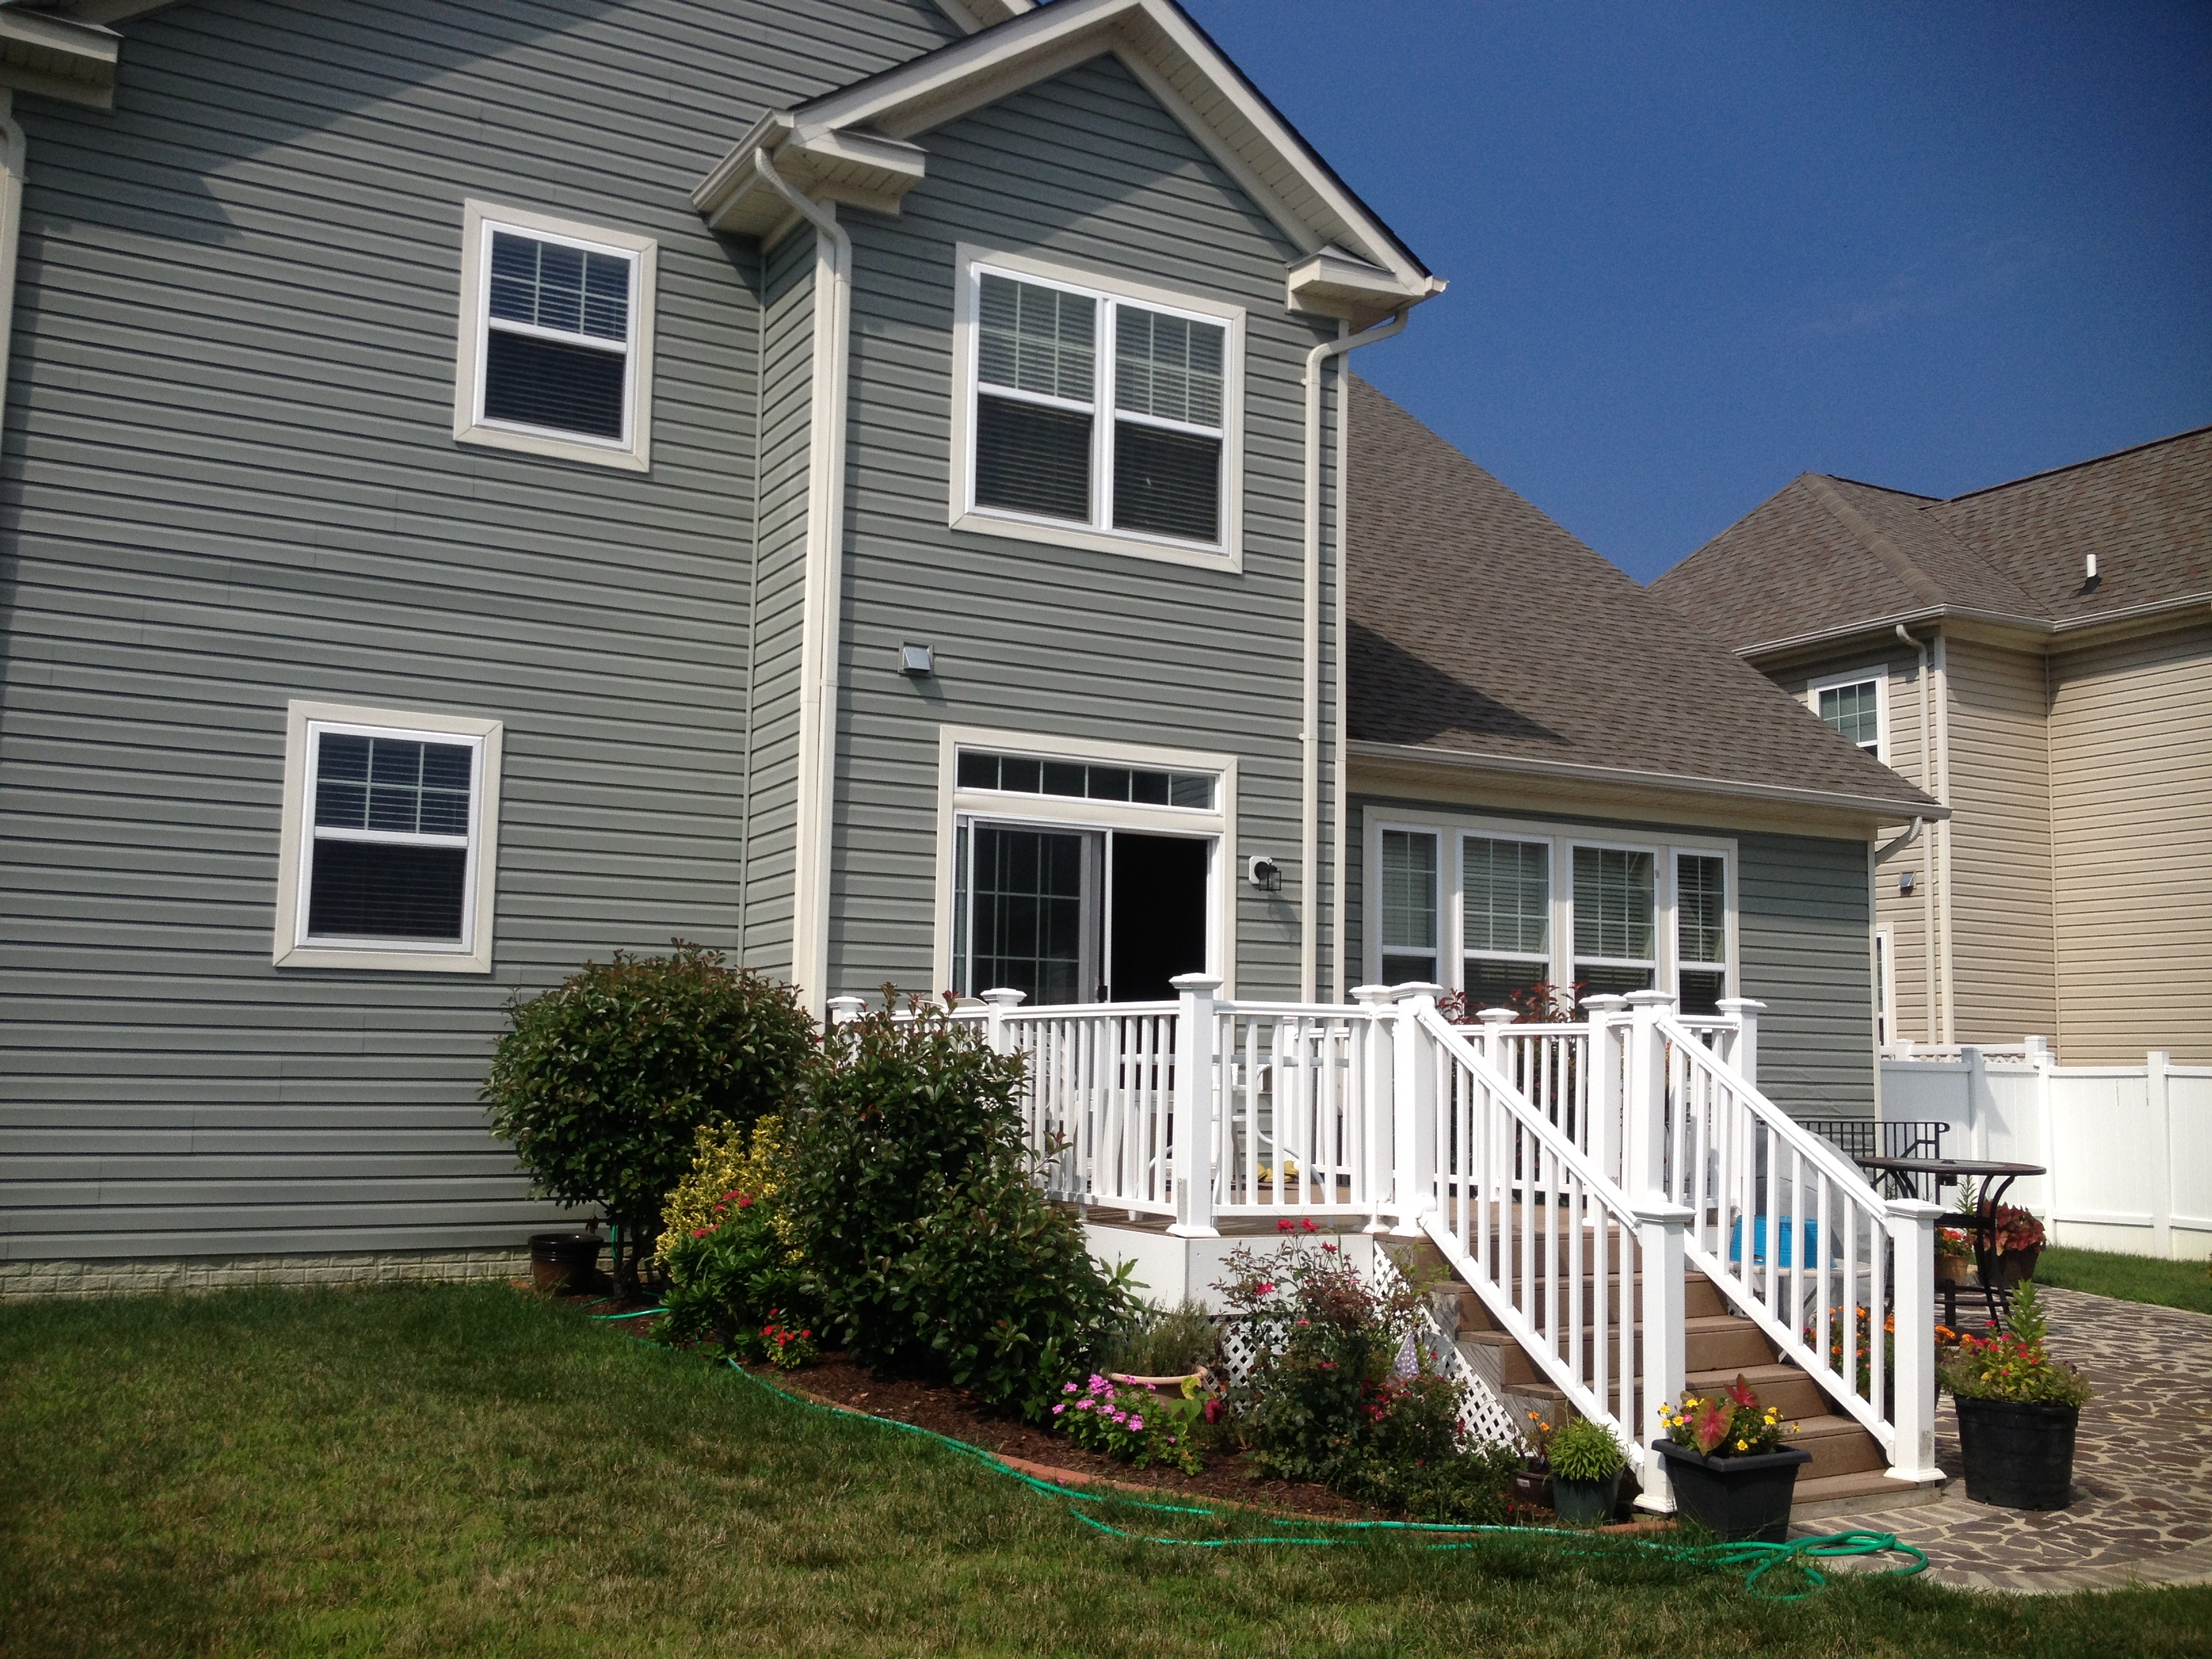 Sold Beautiful Colonial In St Charles Sheffield